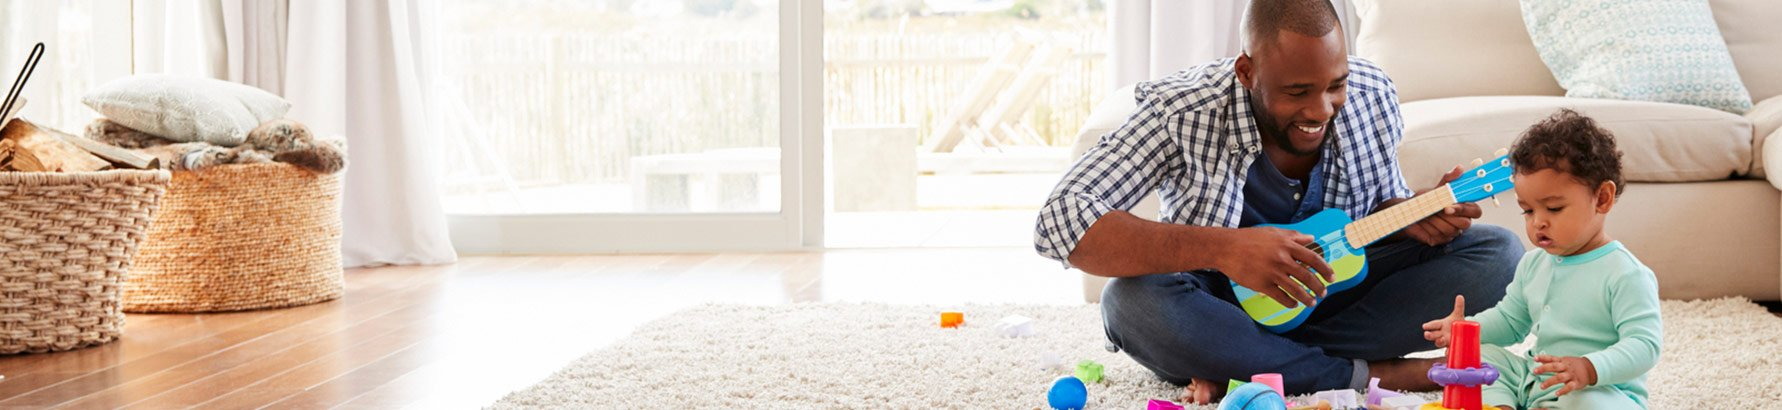 Man and child playing with toys in living room